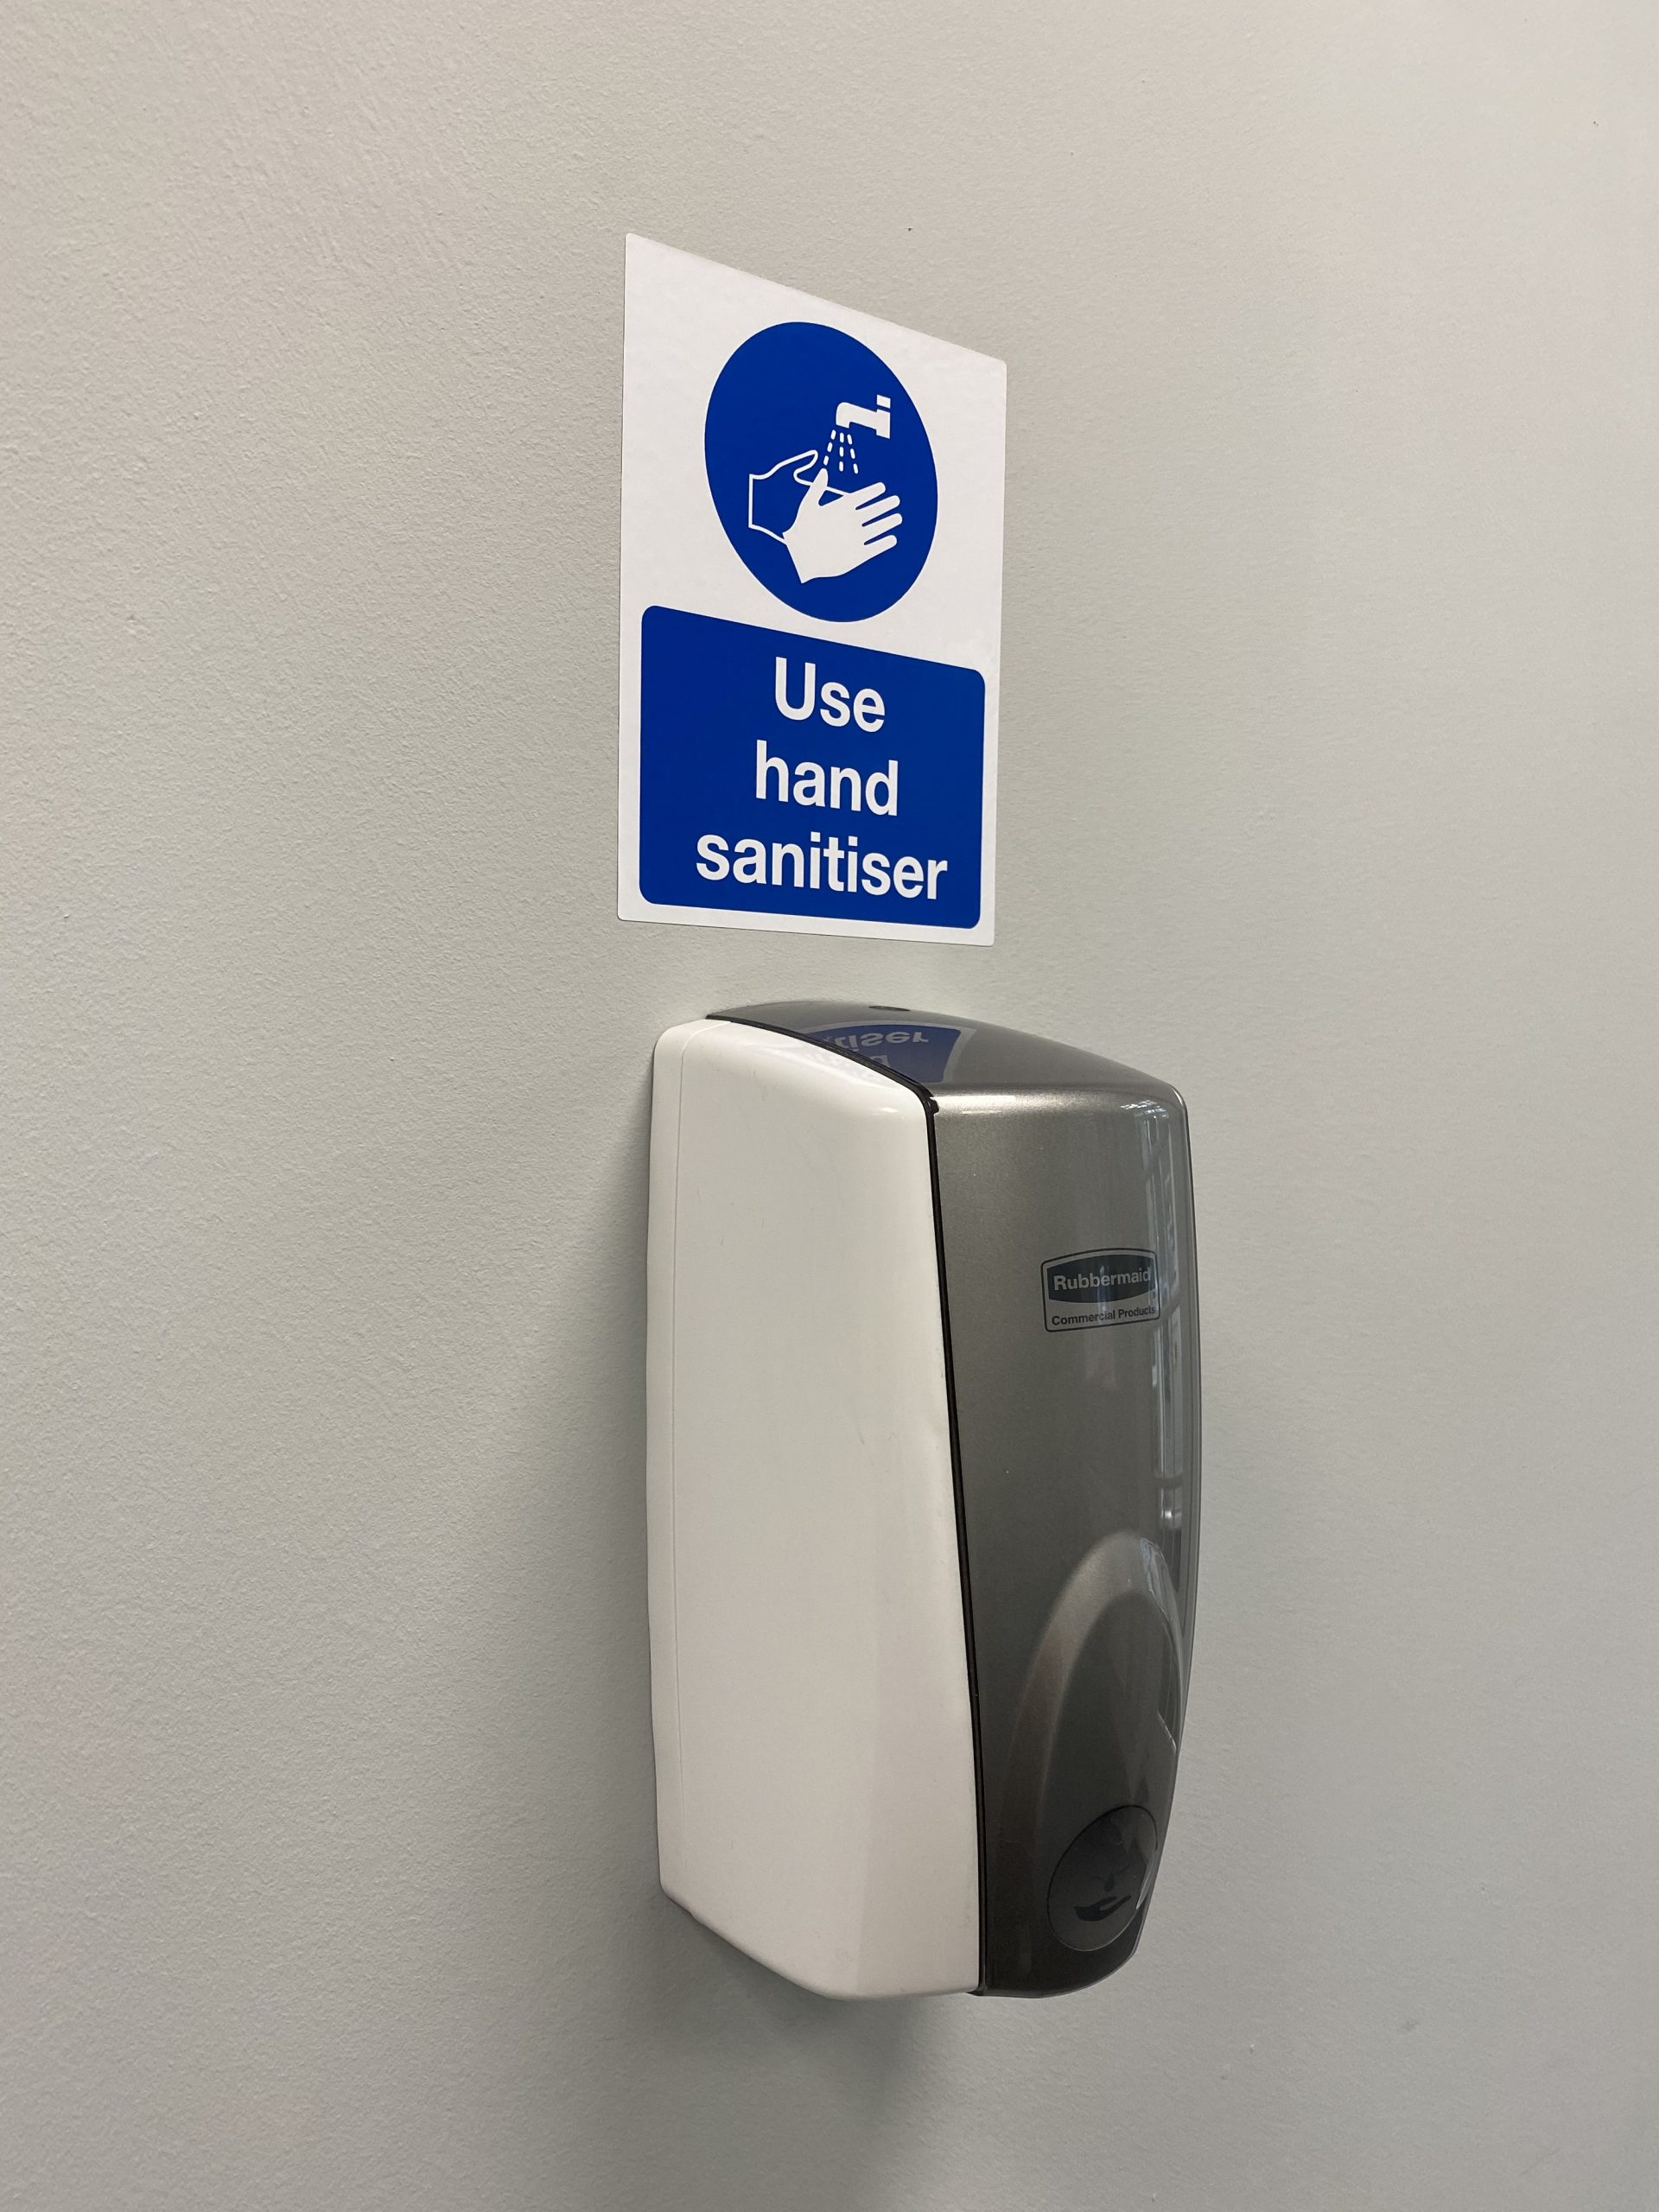 Tanshire Park Wall Mounted Hand Sanitiser Dispenser to encourage hand hygiene during COVID-19 pandemic